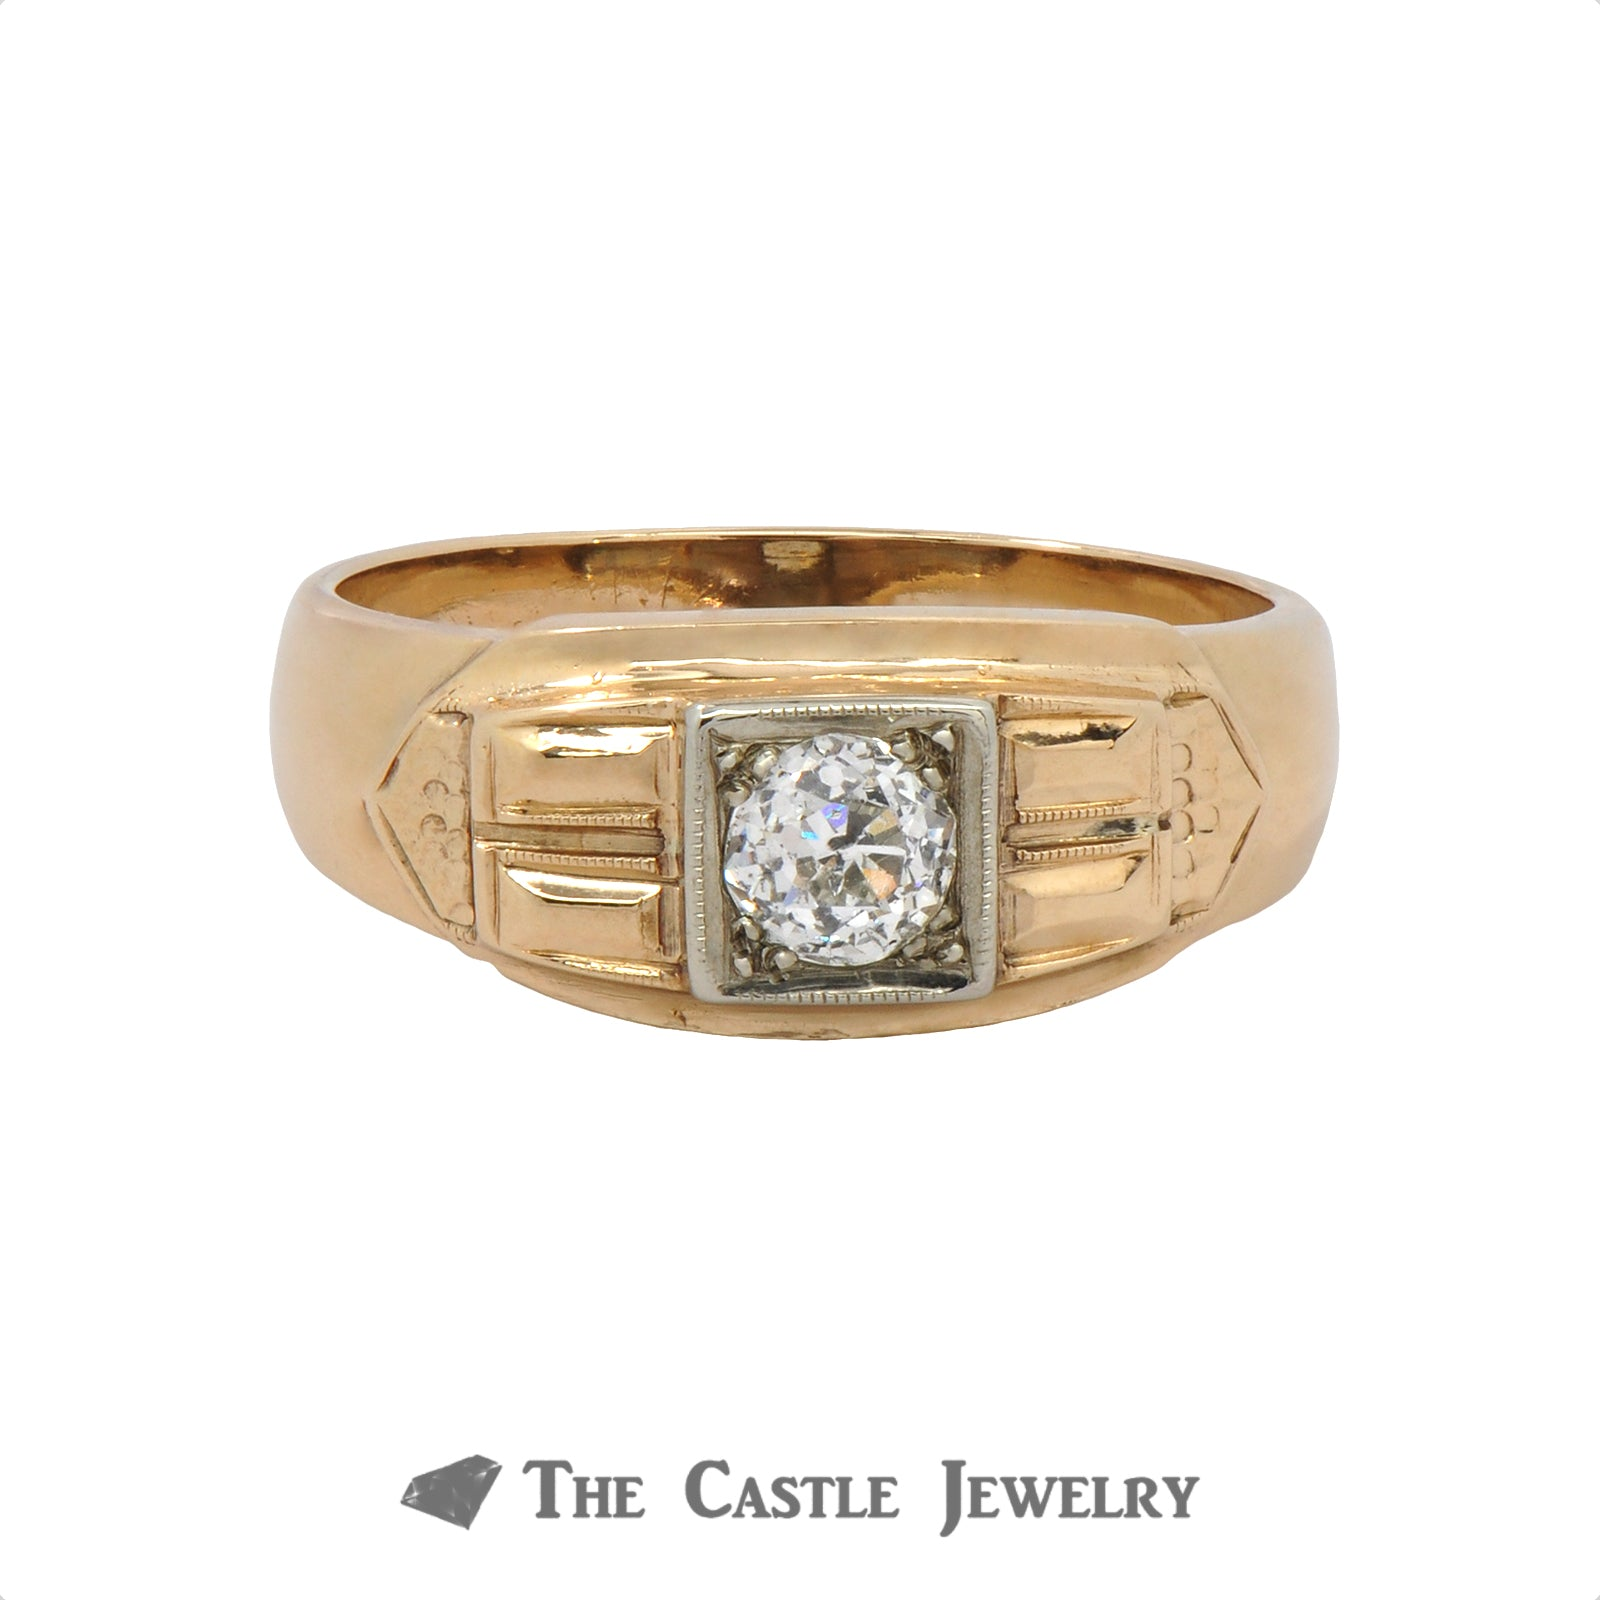 .40 Carat Old European Cut Diamond Gent's Vintage Ring In 14K Yellow Gold